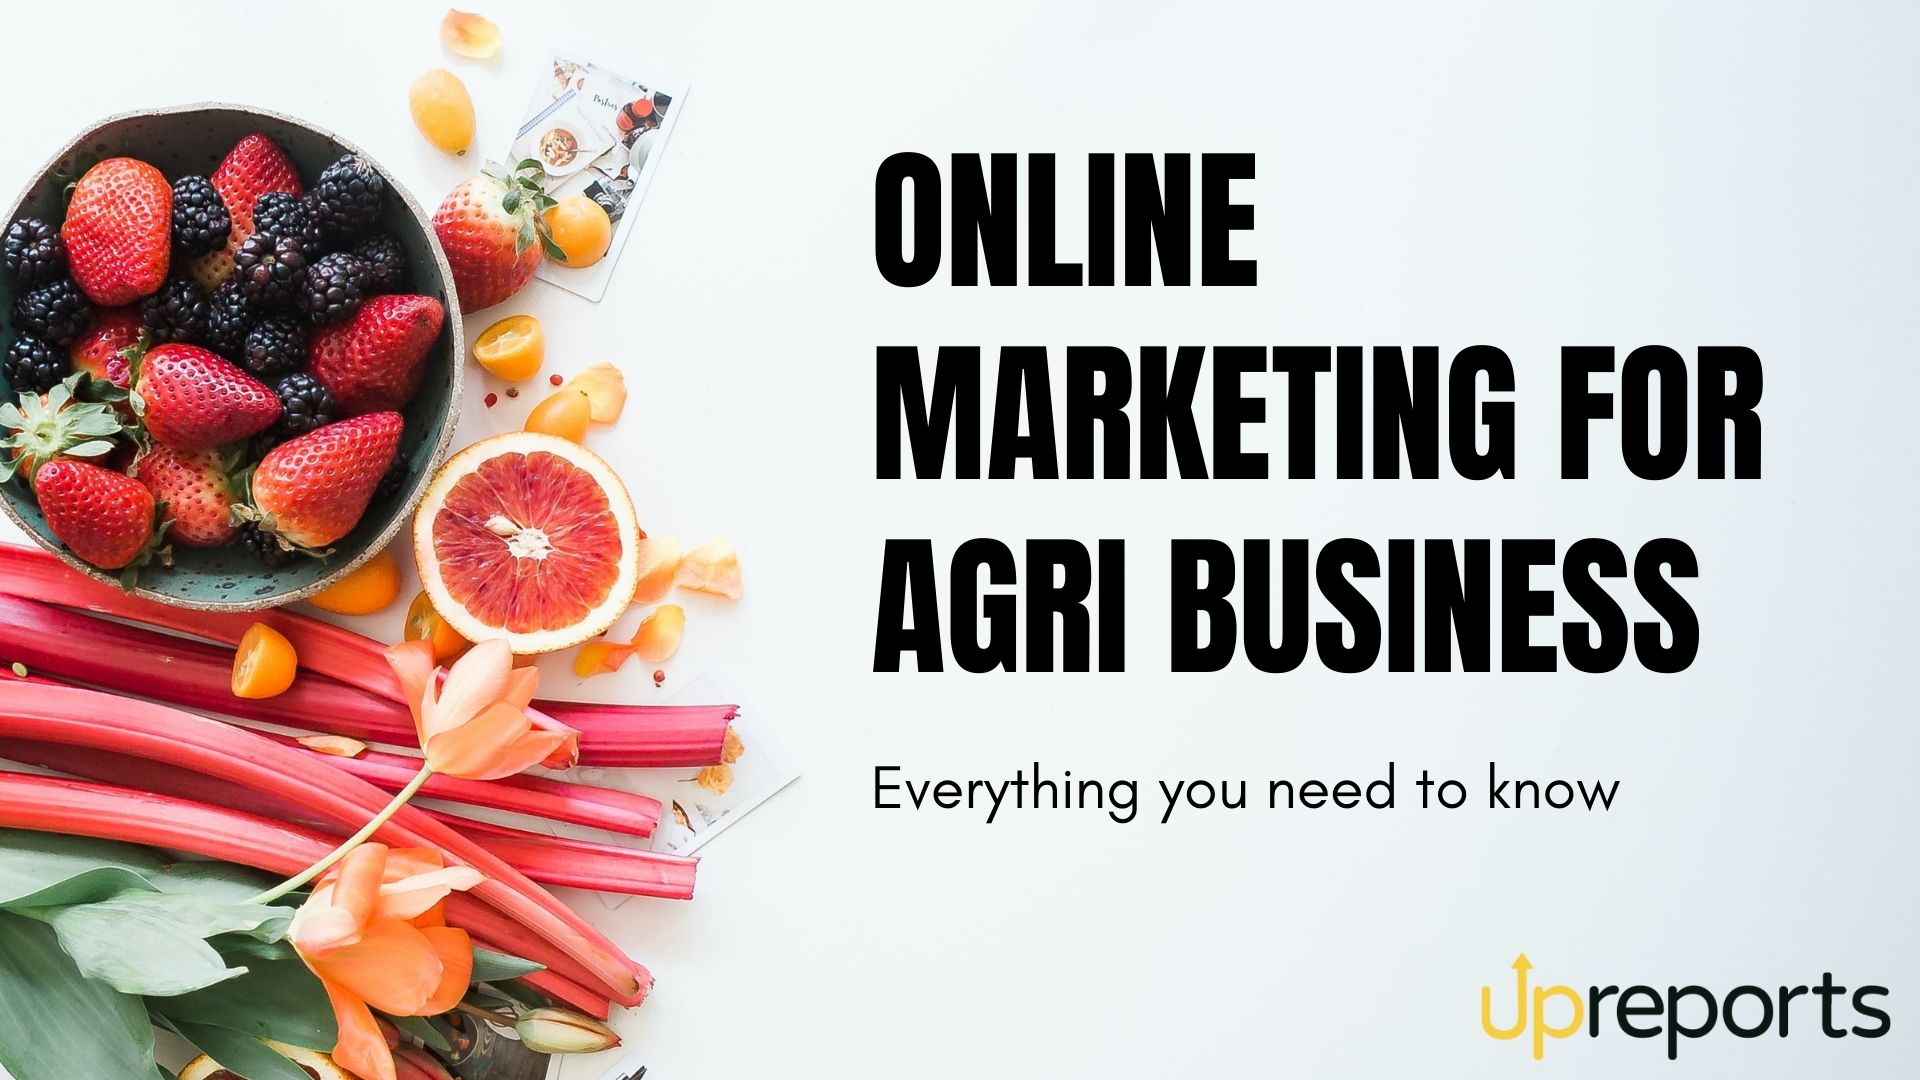 Marketing for Agribusiness: Everything You Need to Know